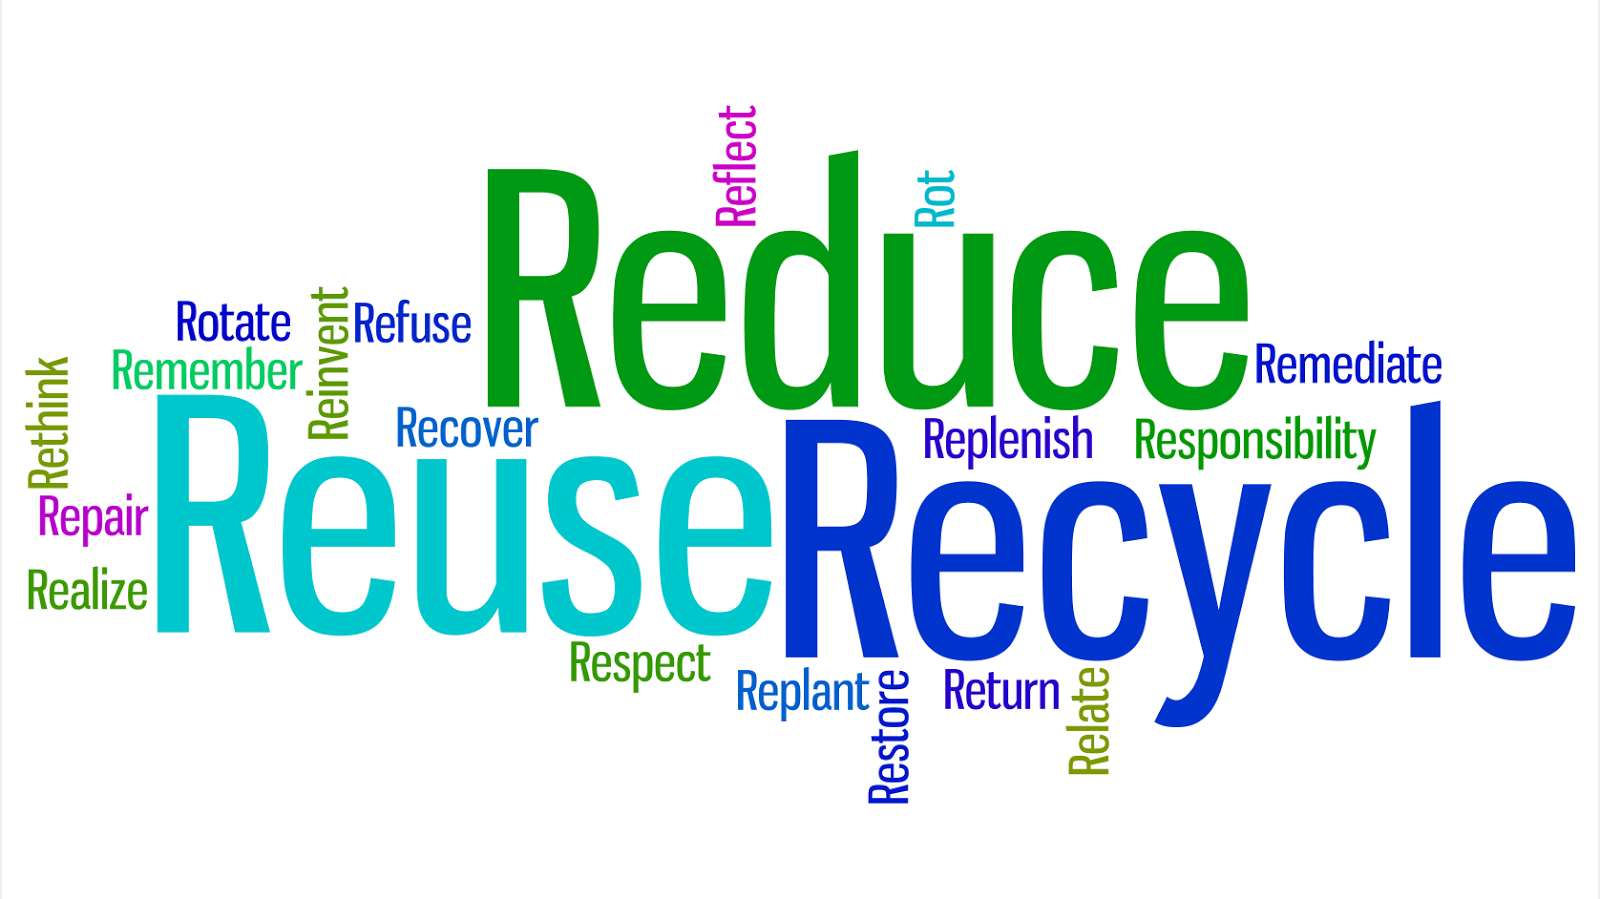 Reduce and recycle